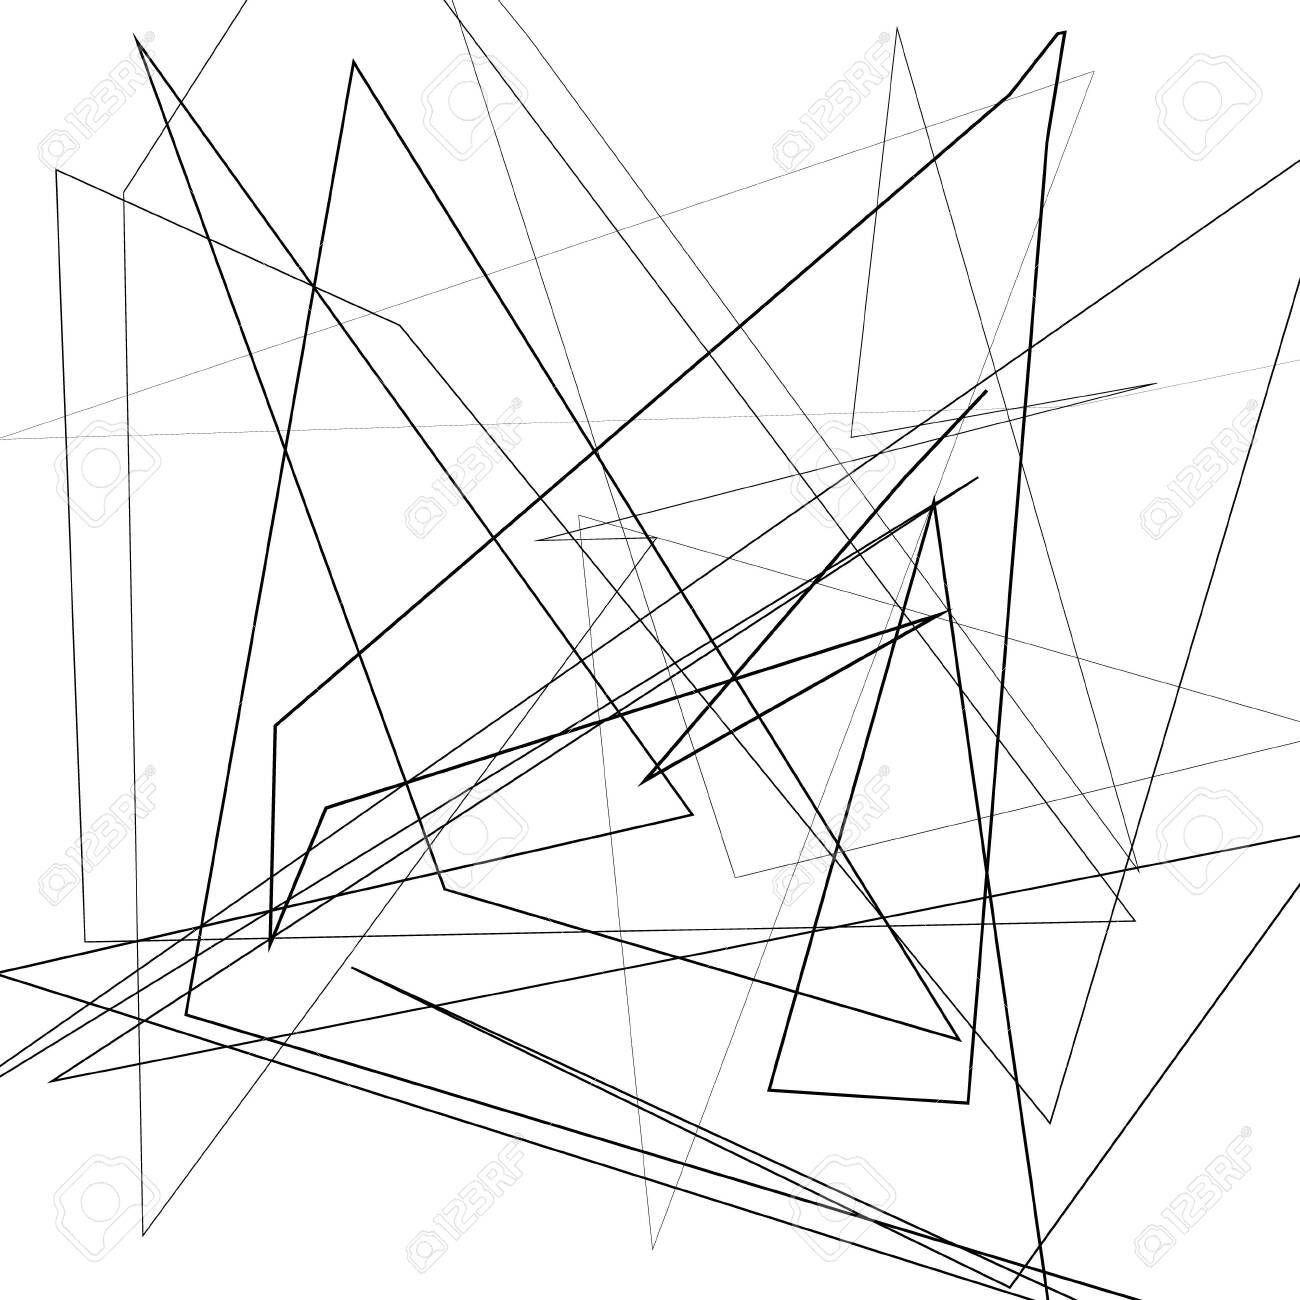 Black and white vector illustration of design element for creating modern art backgrounds, patterns. Asymmetrical texture with random chaotic lines, abstract geometric pattern. Grunge urban style - 133303632